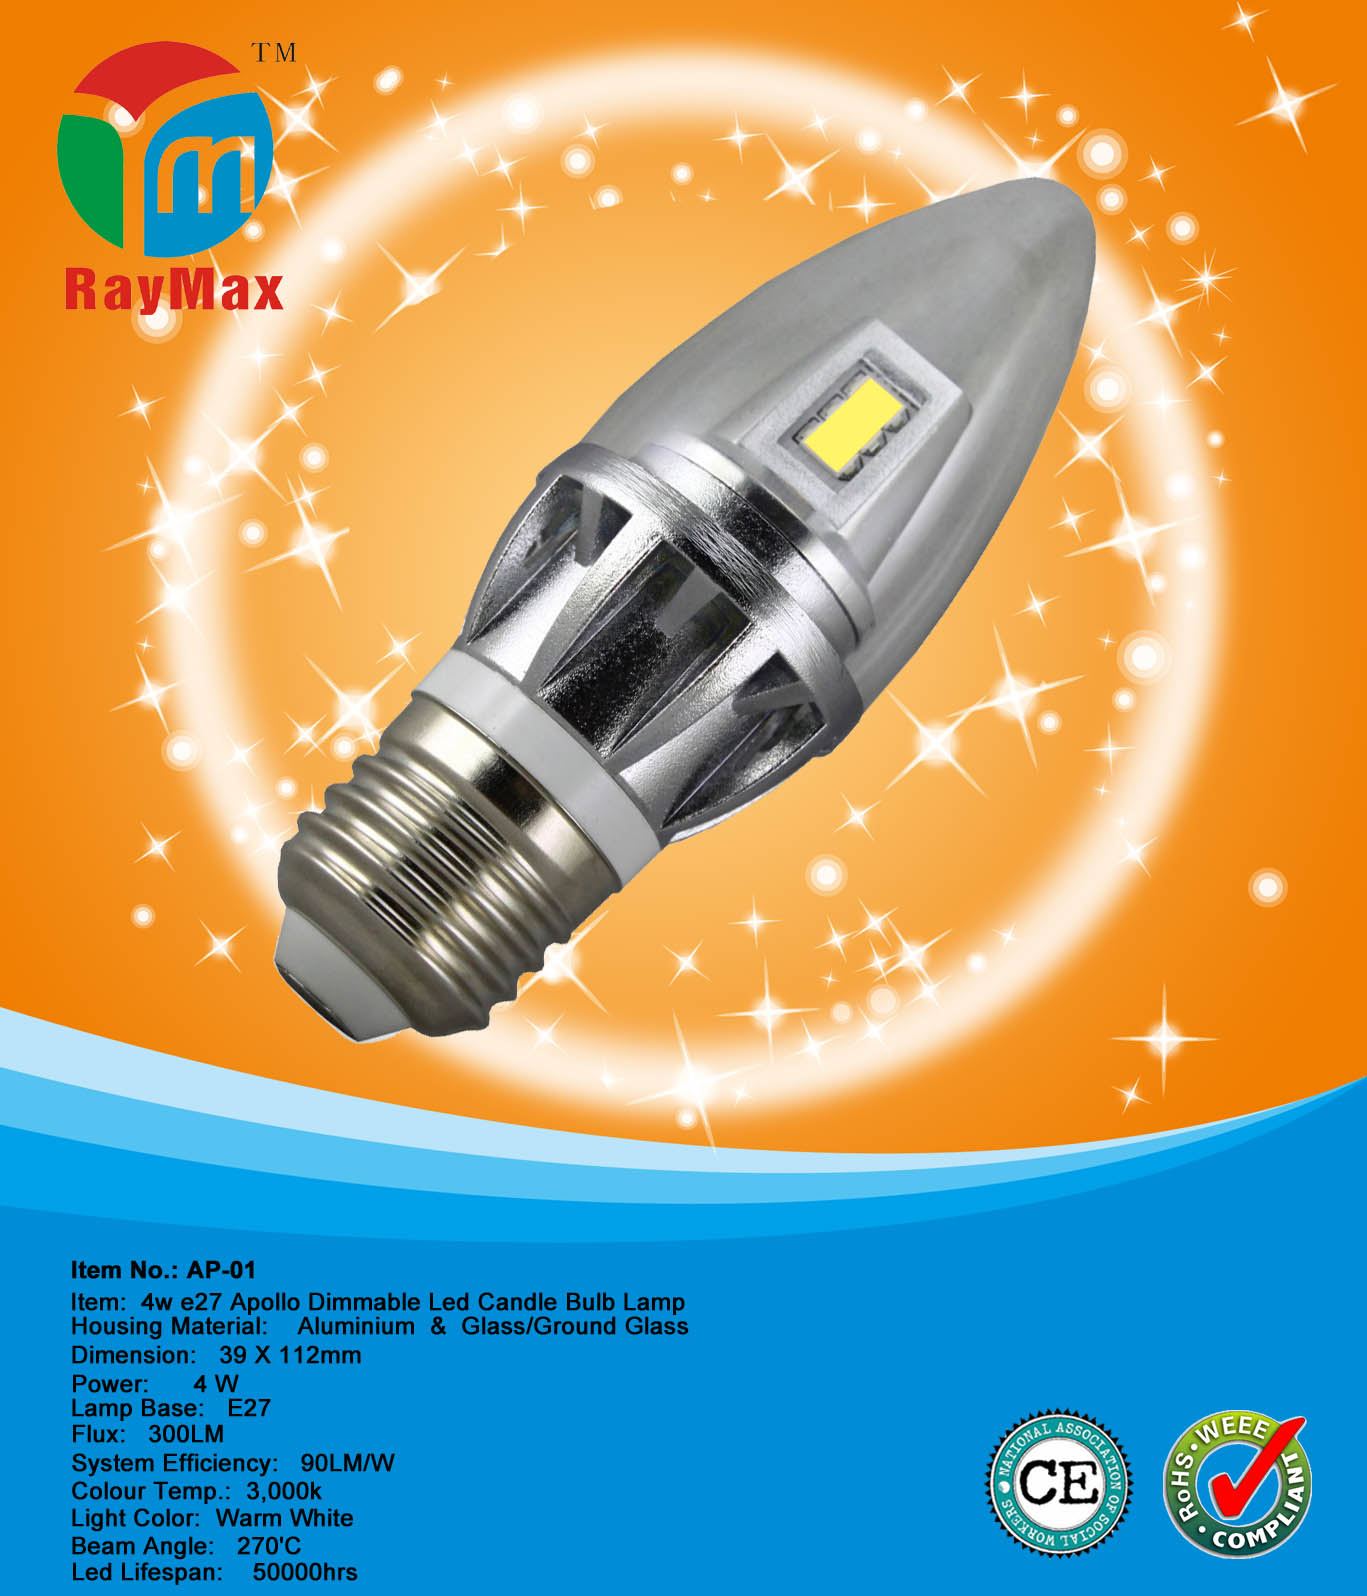 3.4W E27 Apollo Dimmable Led Candle Bulb Lamp